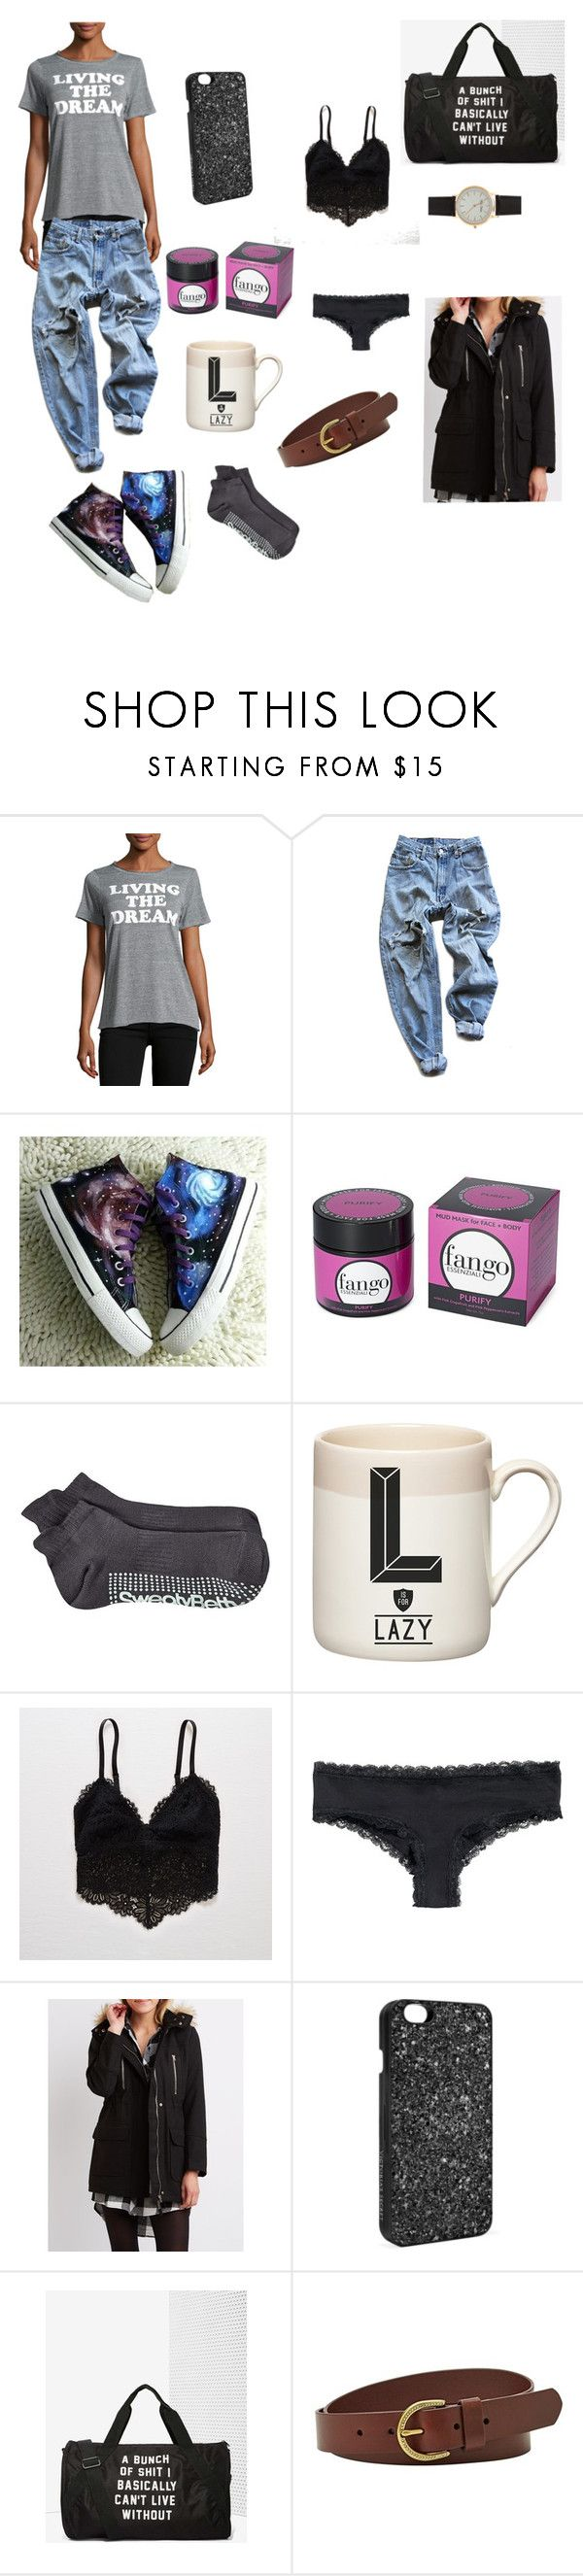 """Living the dream ☁️"" by petalsonaflower ❤ liked on Polyvore featuring Chaser, Levi's, HVBAO, Borghese, Sweaty Betty, Gary Birks Design, Aerie, Charlotte Russe, Victoria's Secret and FOSSIL"